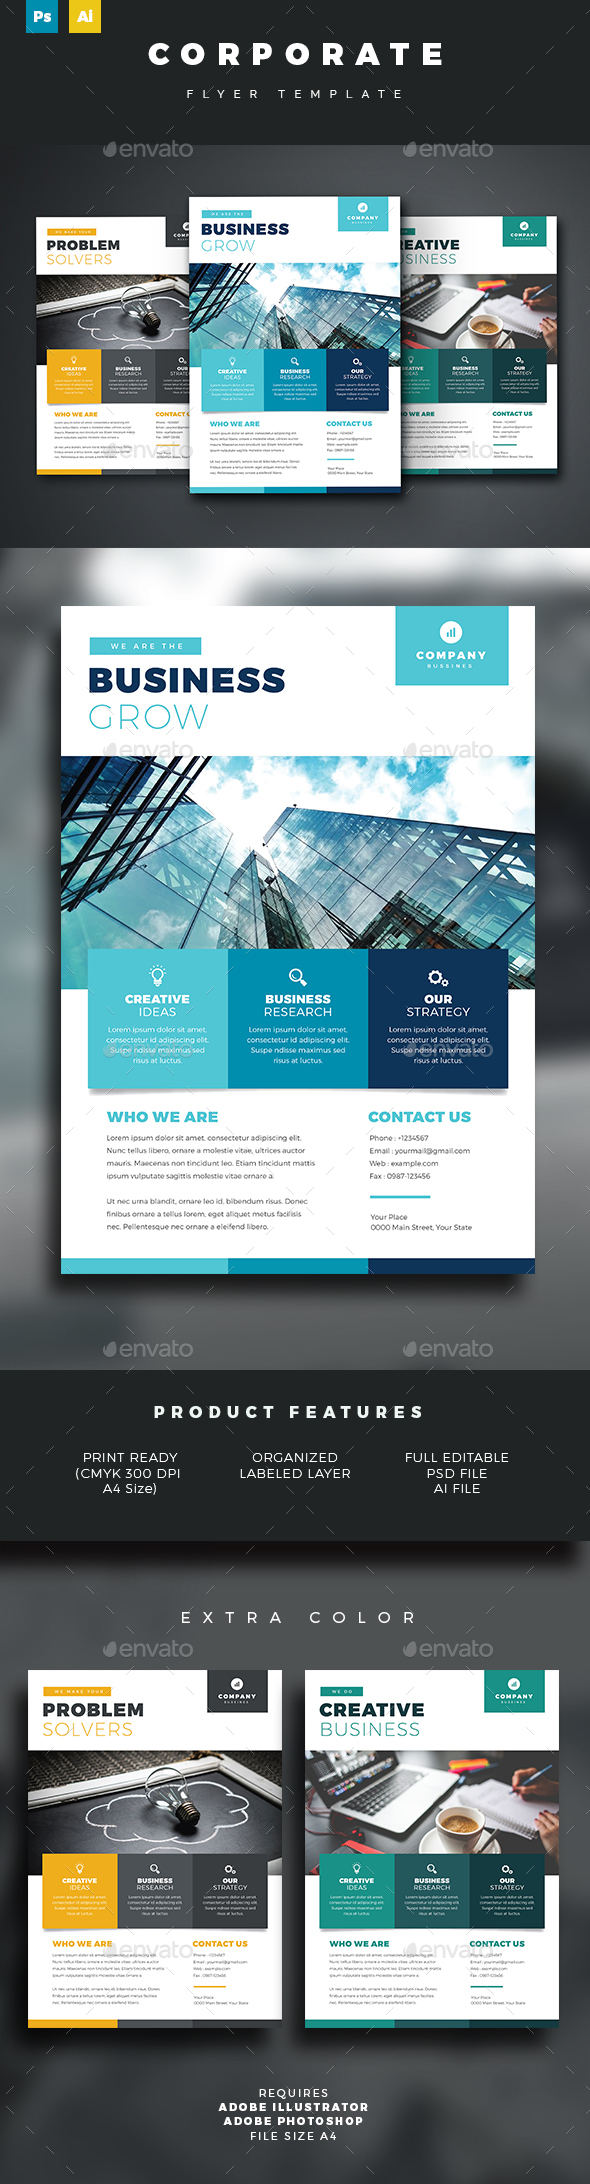 GraphicRiver Corporate Flyer Template 21115890